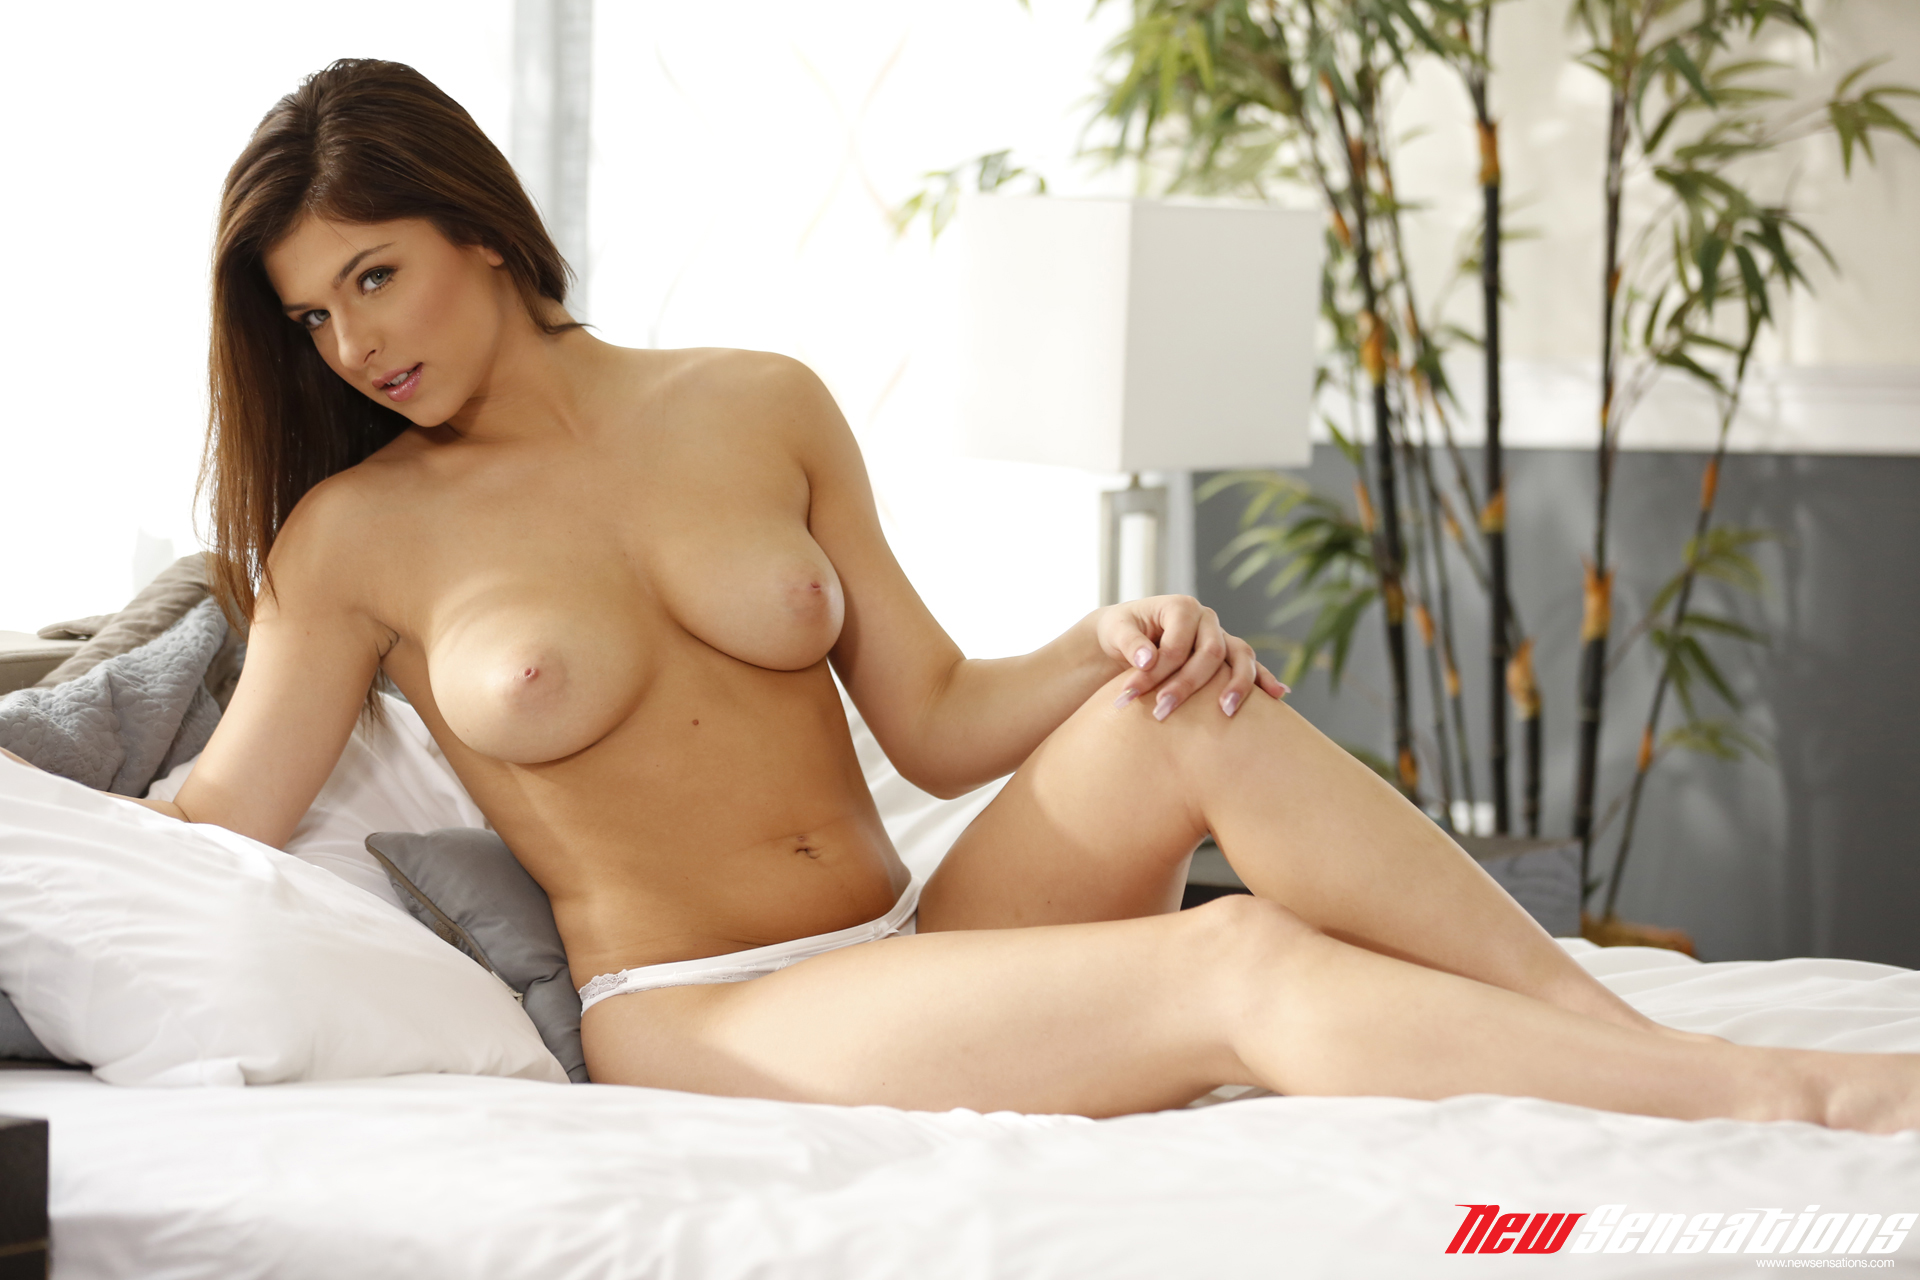 leah gotti nude   114 pictures in an infinite scroll